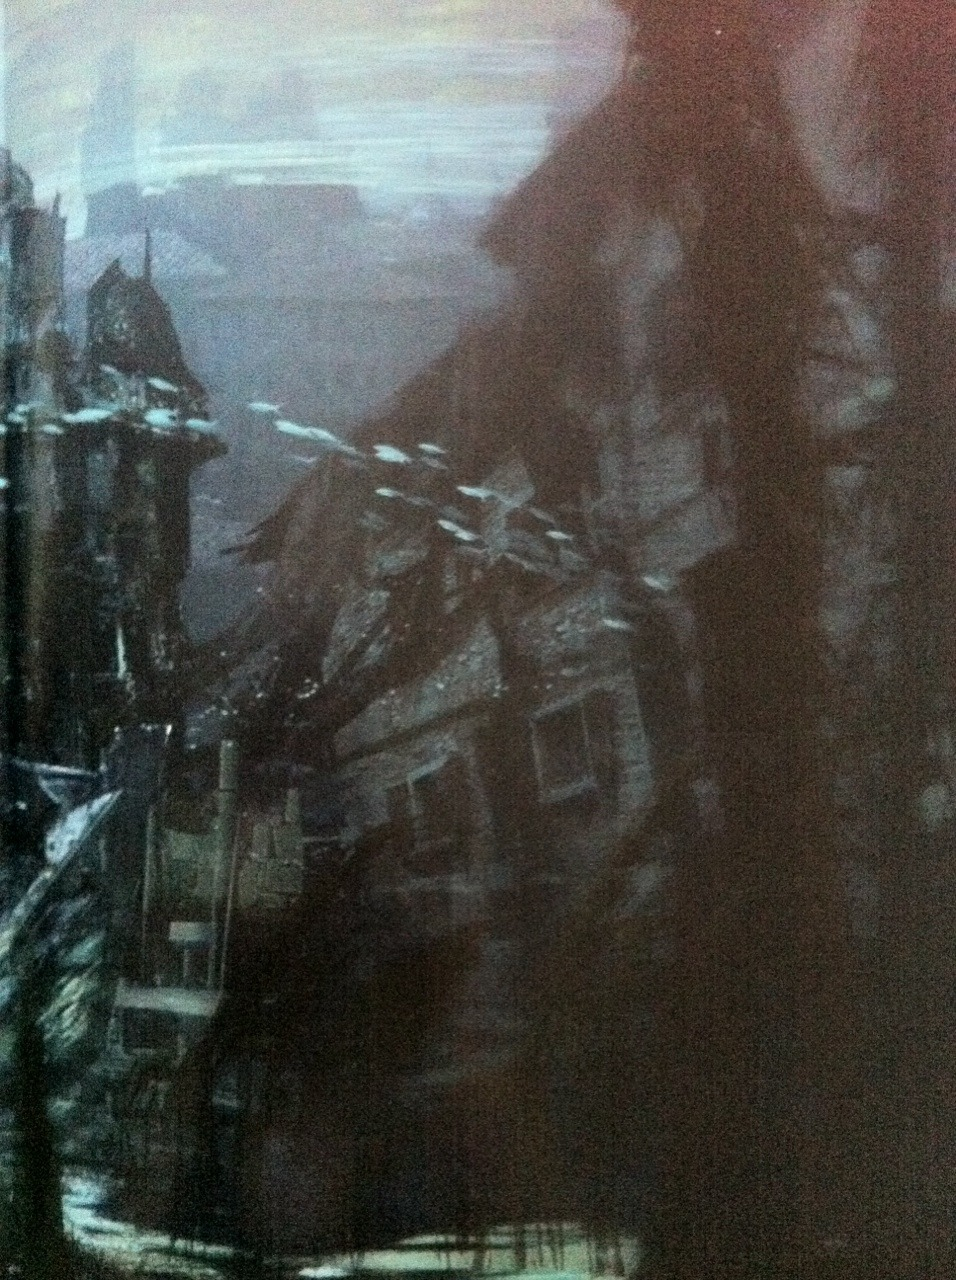 Uncharted 4: A Thief's End Concept Art Emerges 4